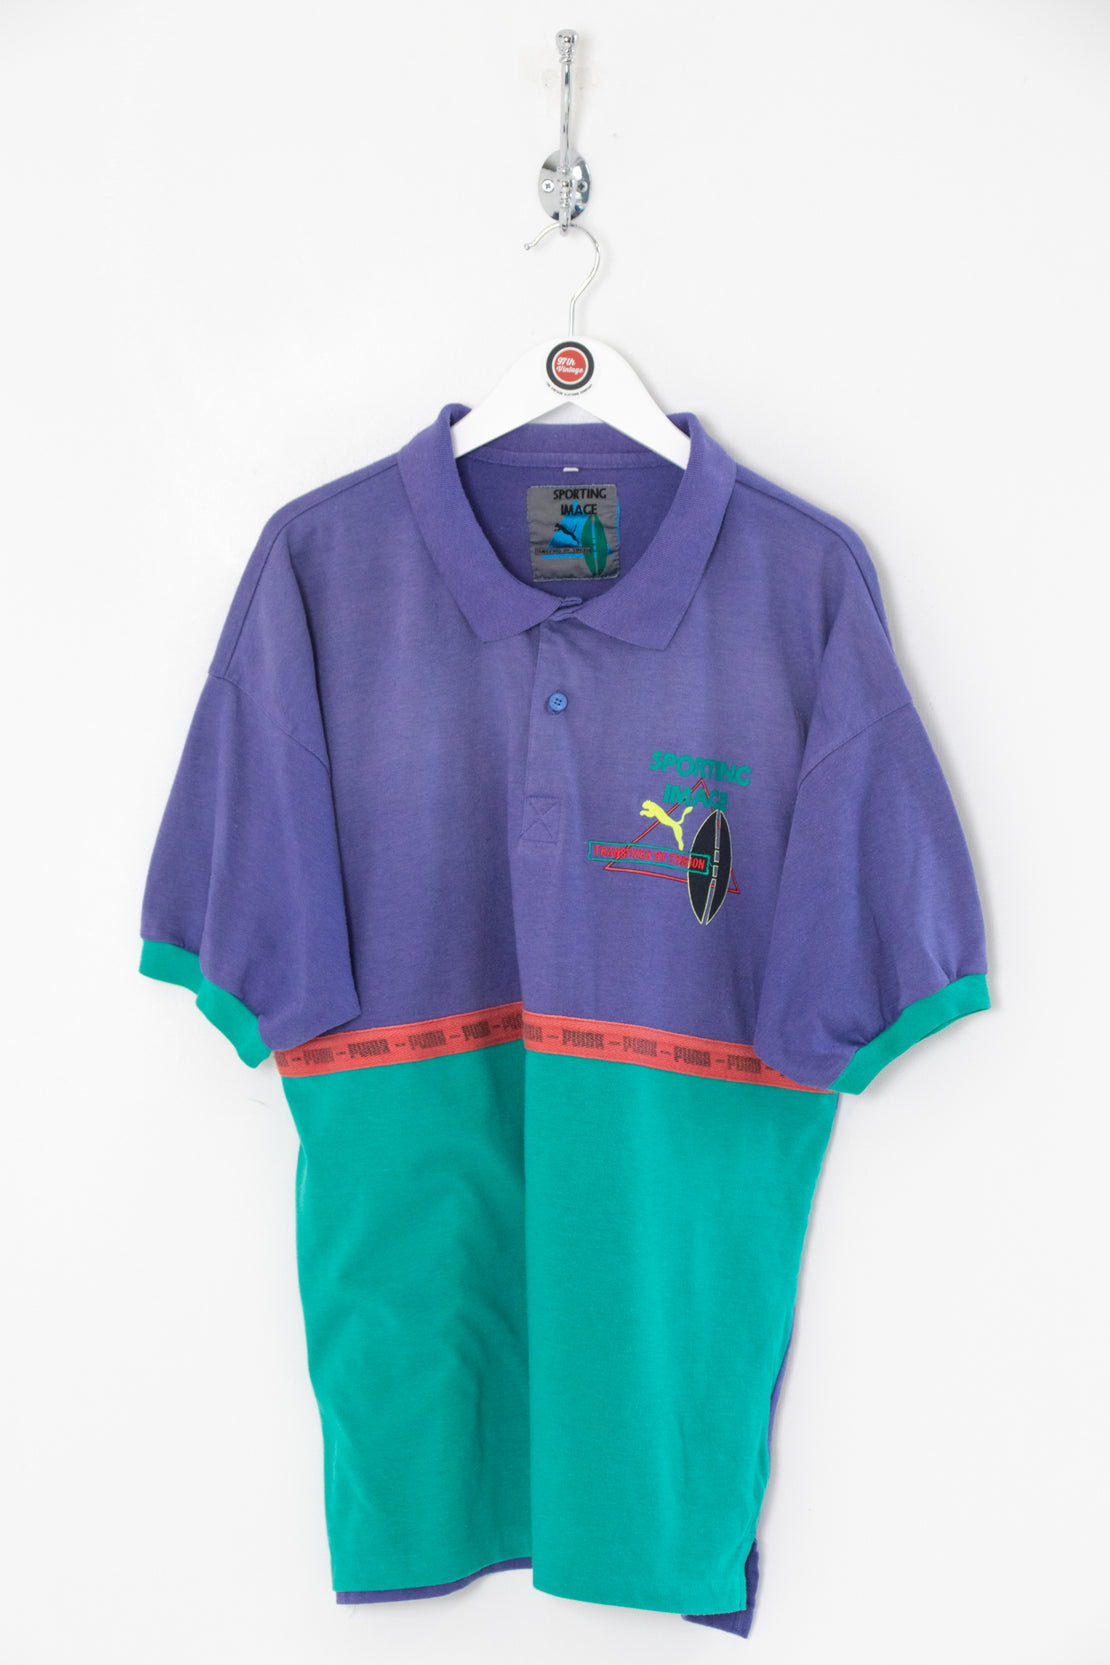 Puma Polo Shirt (XL)